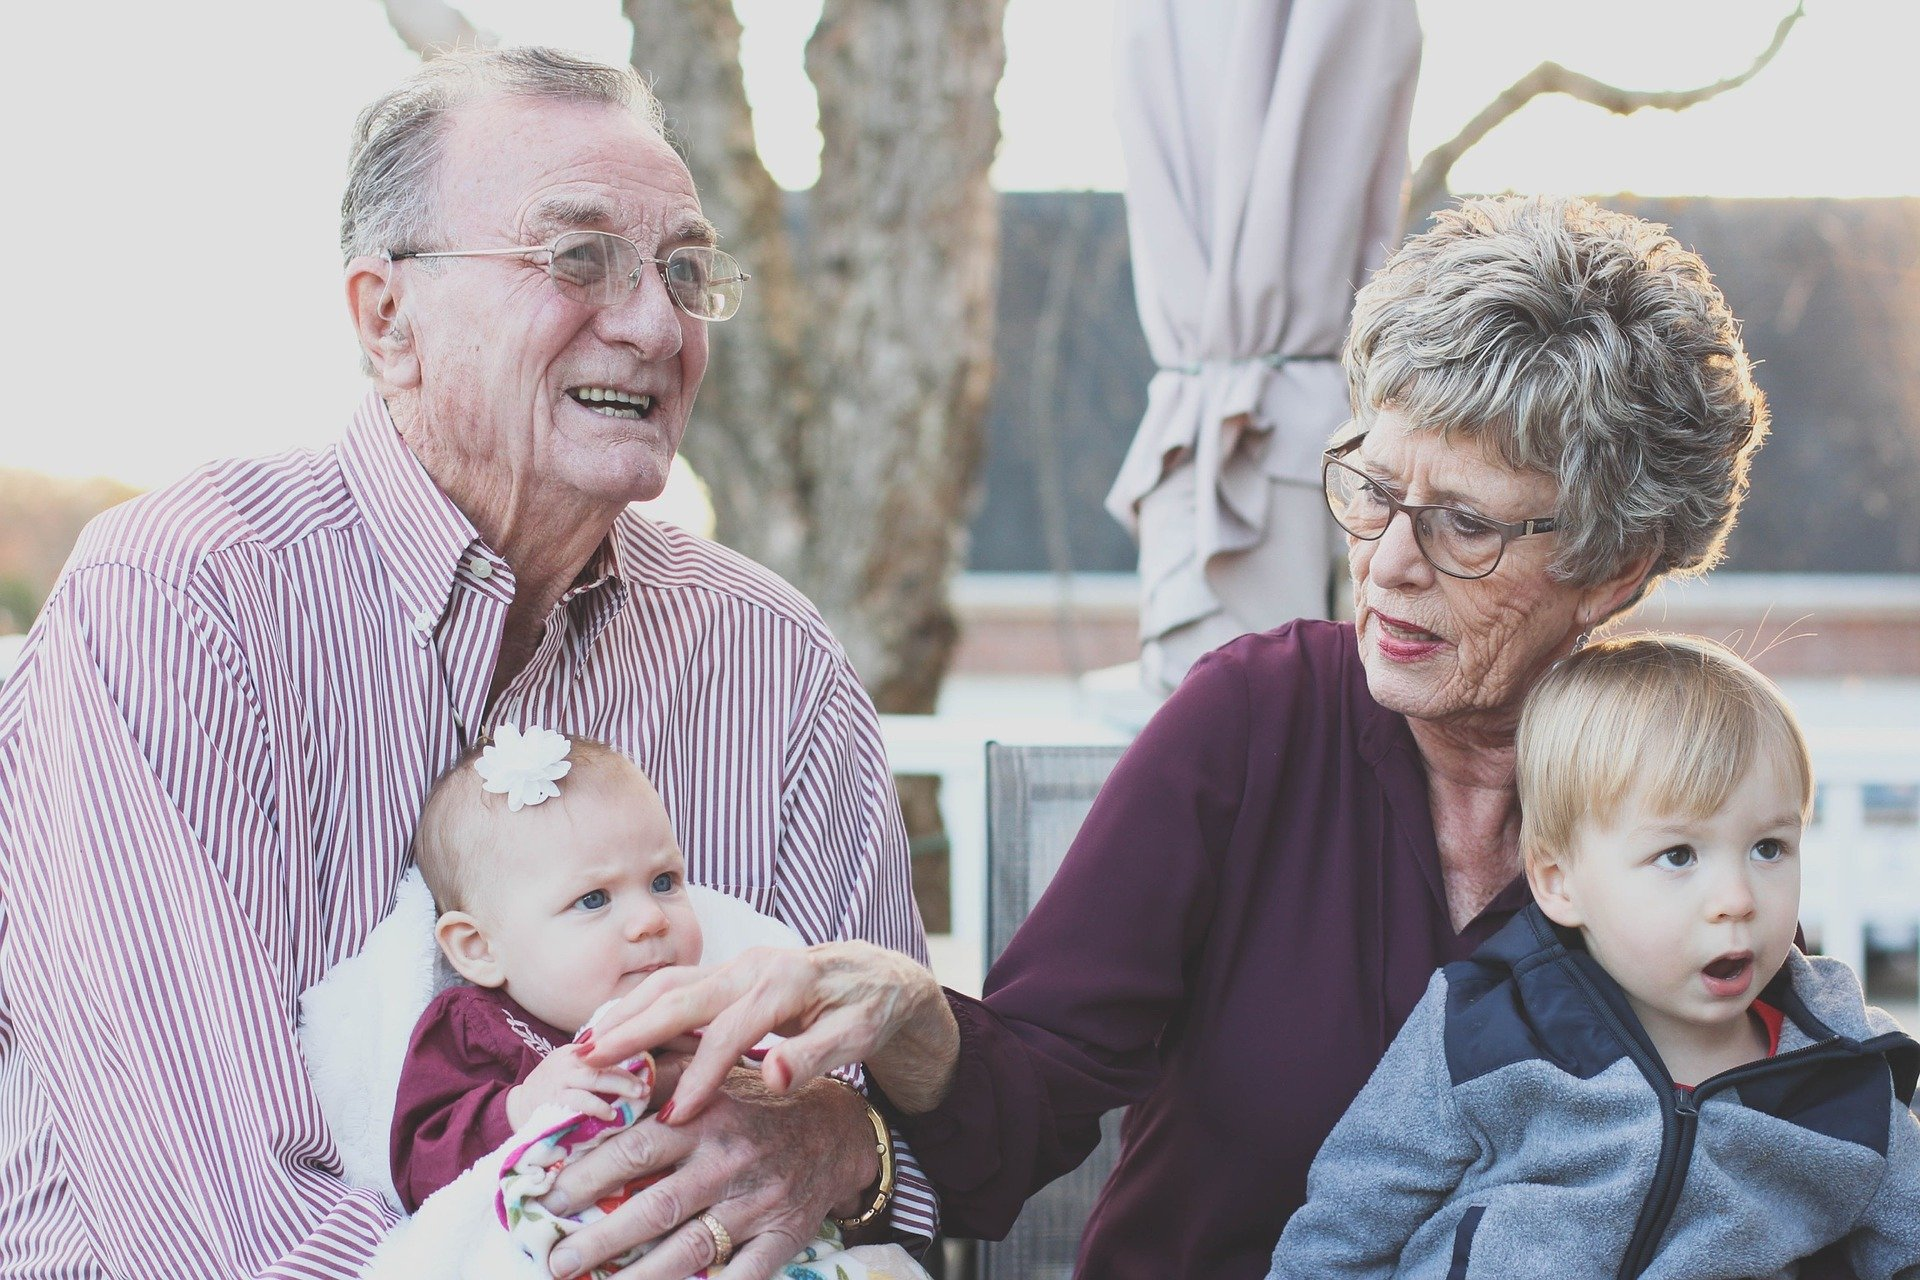 Multigenerational Living: How to Build a Home to Accommodate Families of All Ages